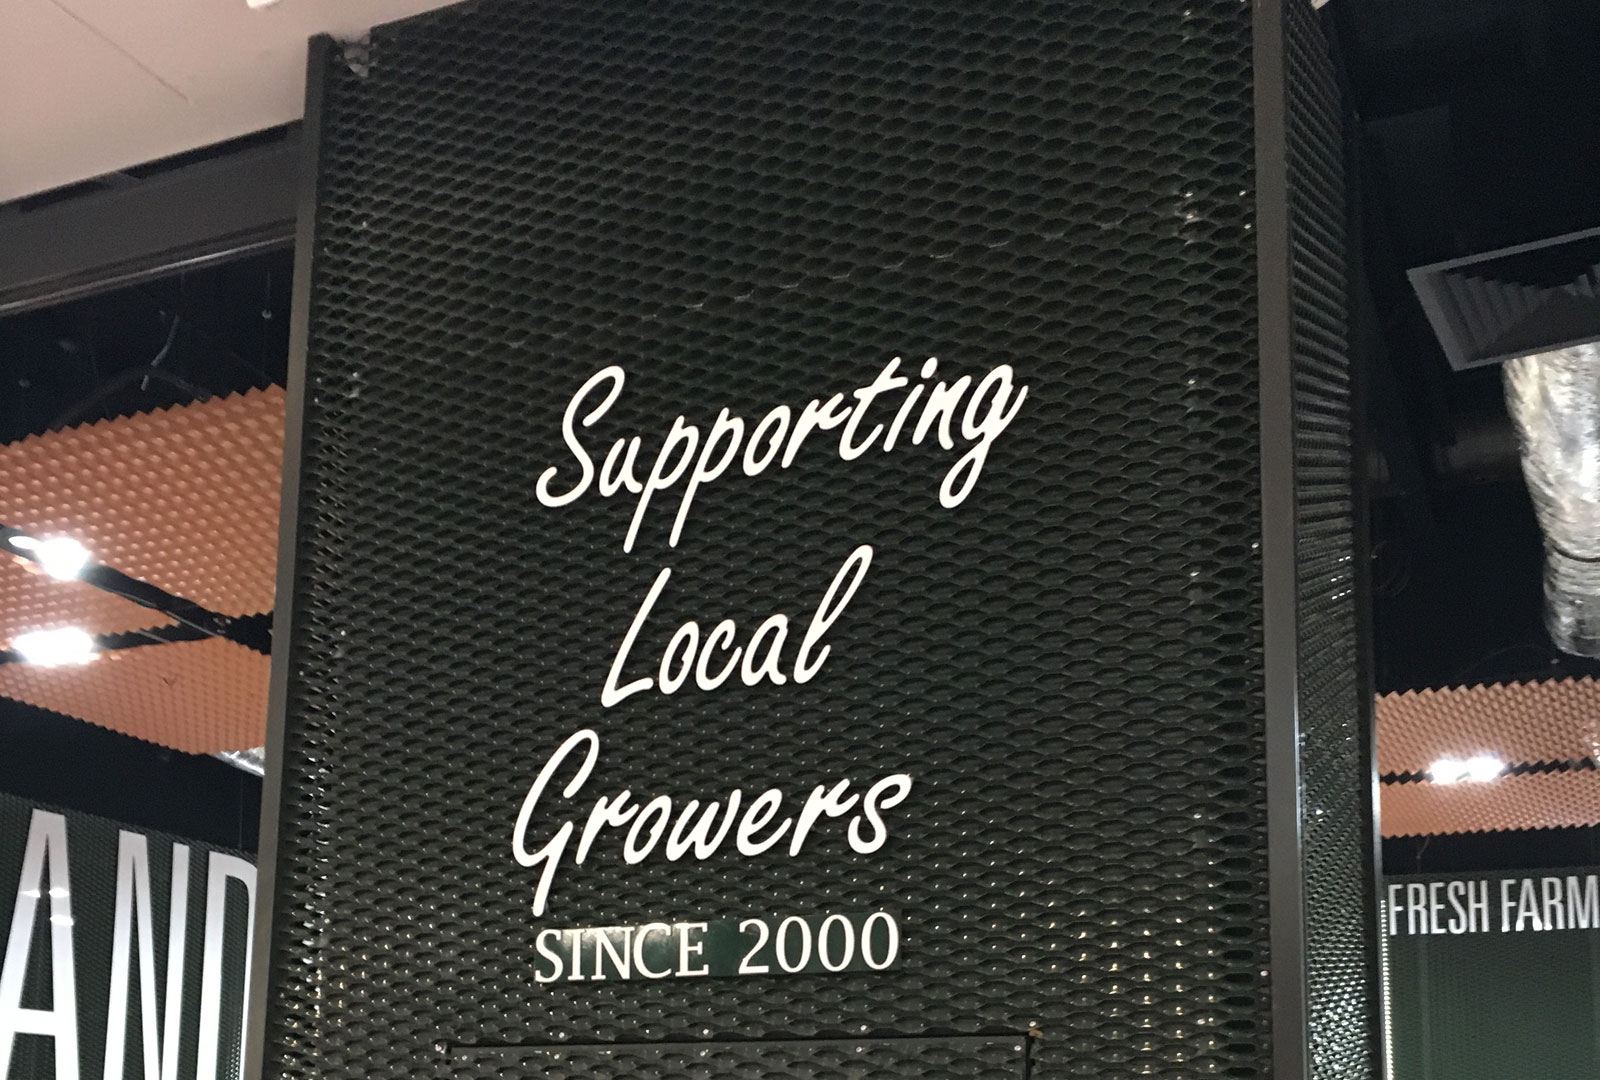 SUPPLY - Lakelands Grocers